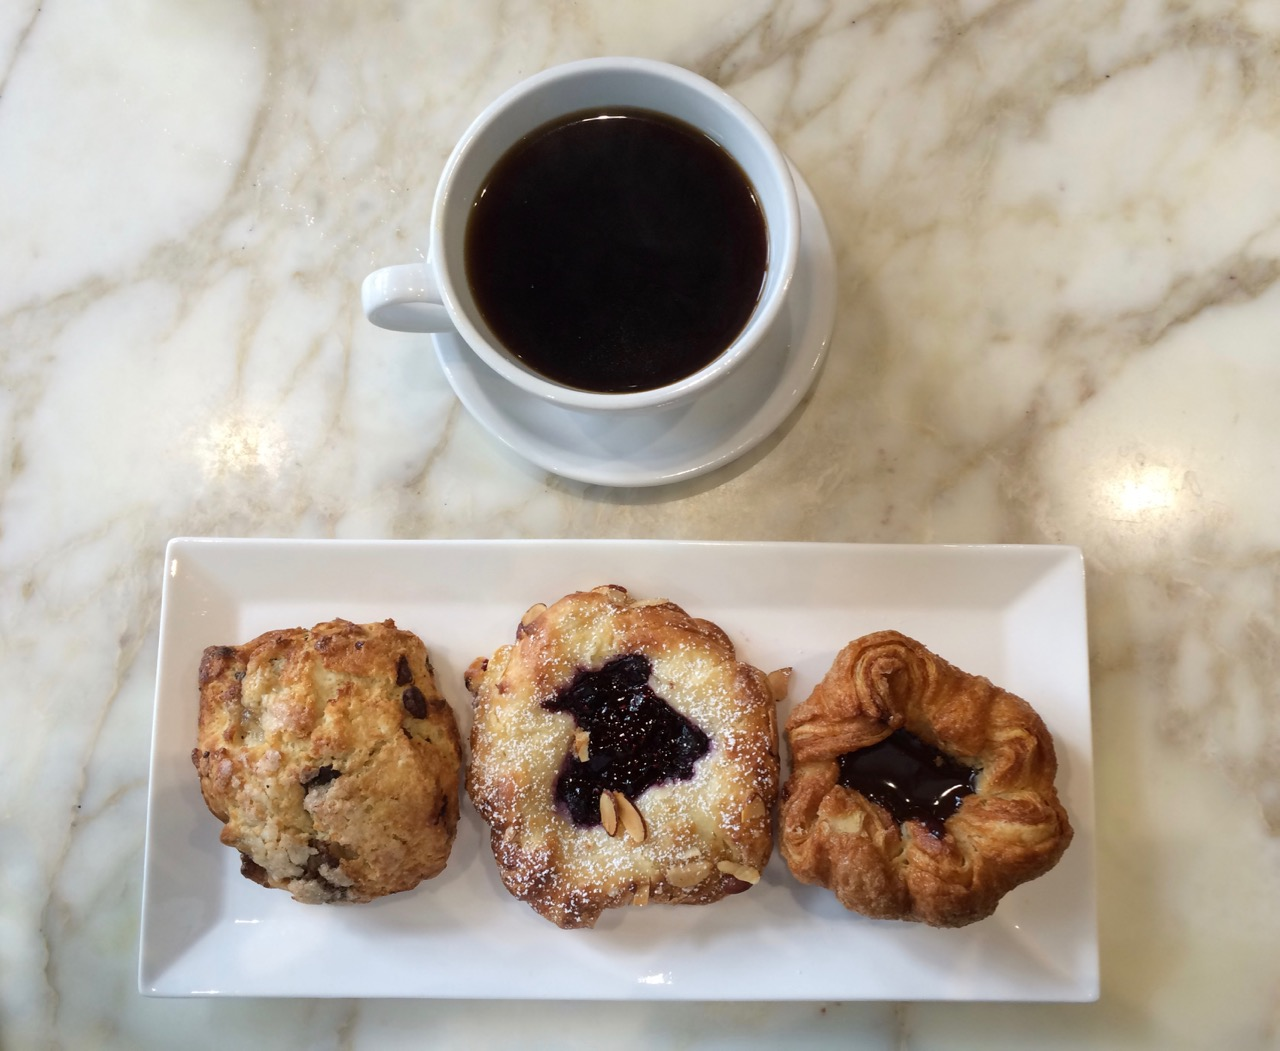 B pattiserie - scone, danish and kouign amman